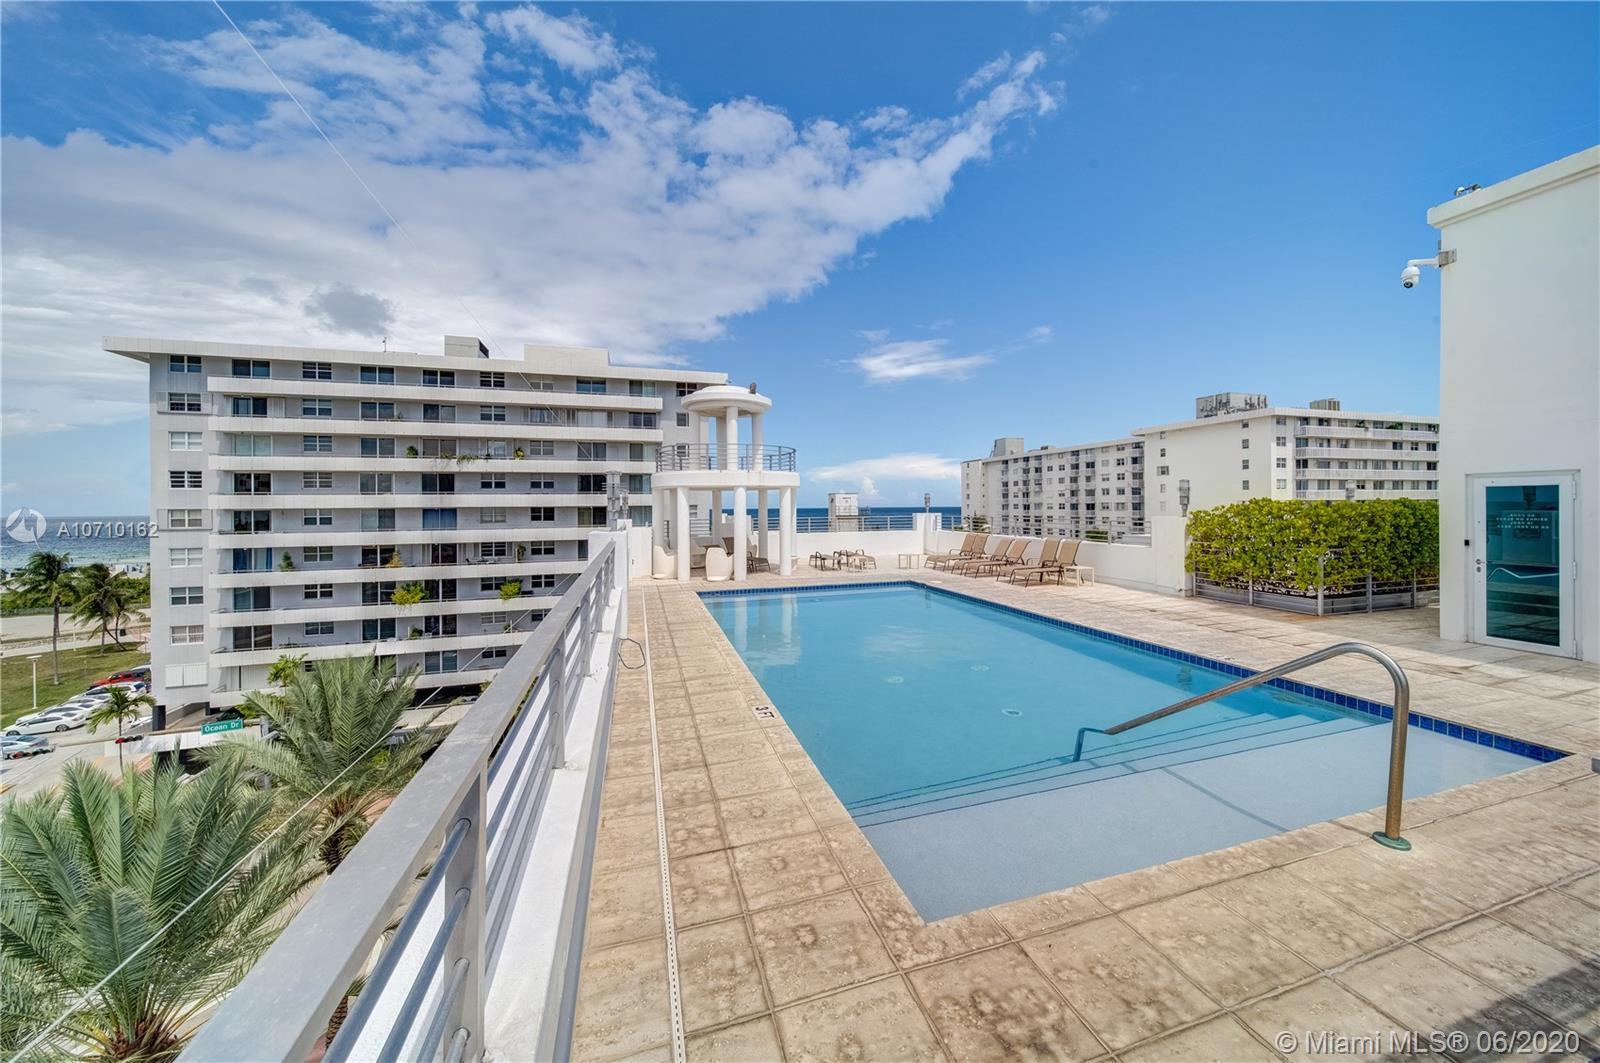 Photo of Ocean Five Condo Apt 302